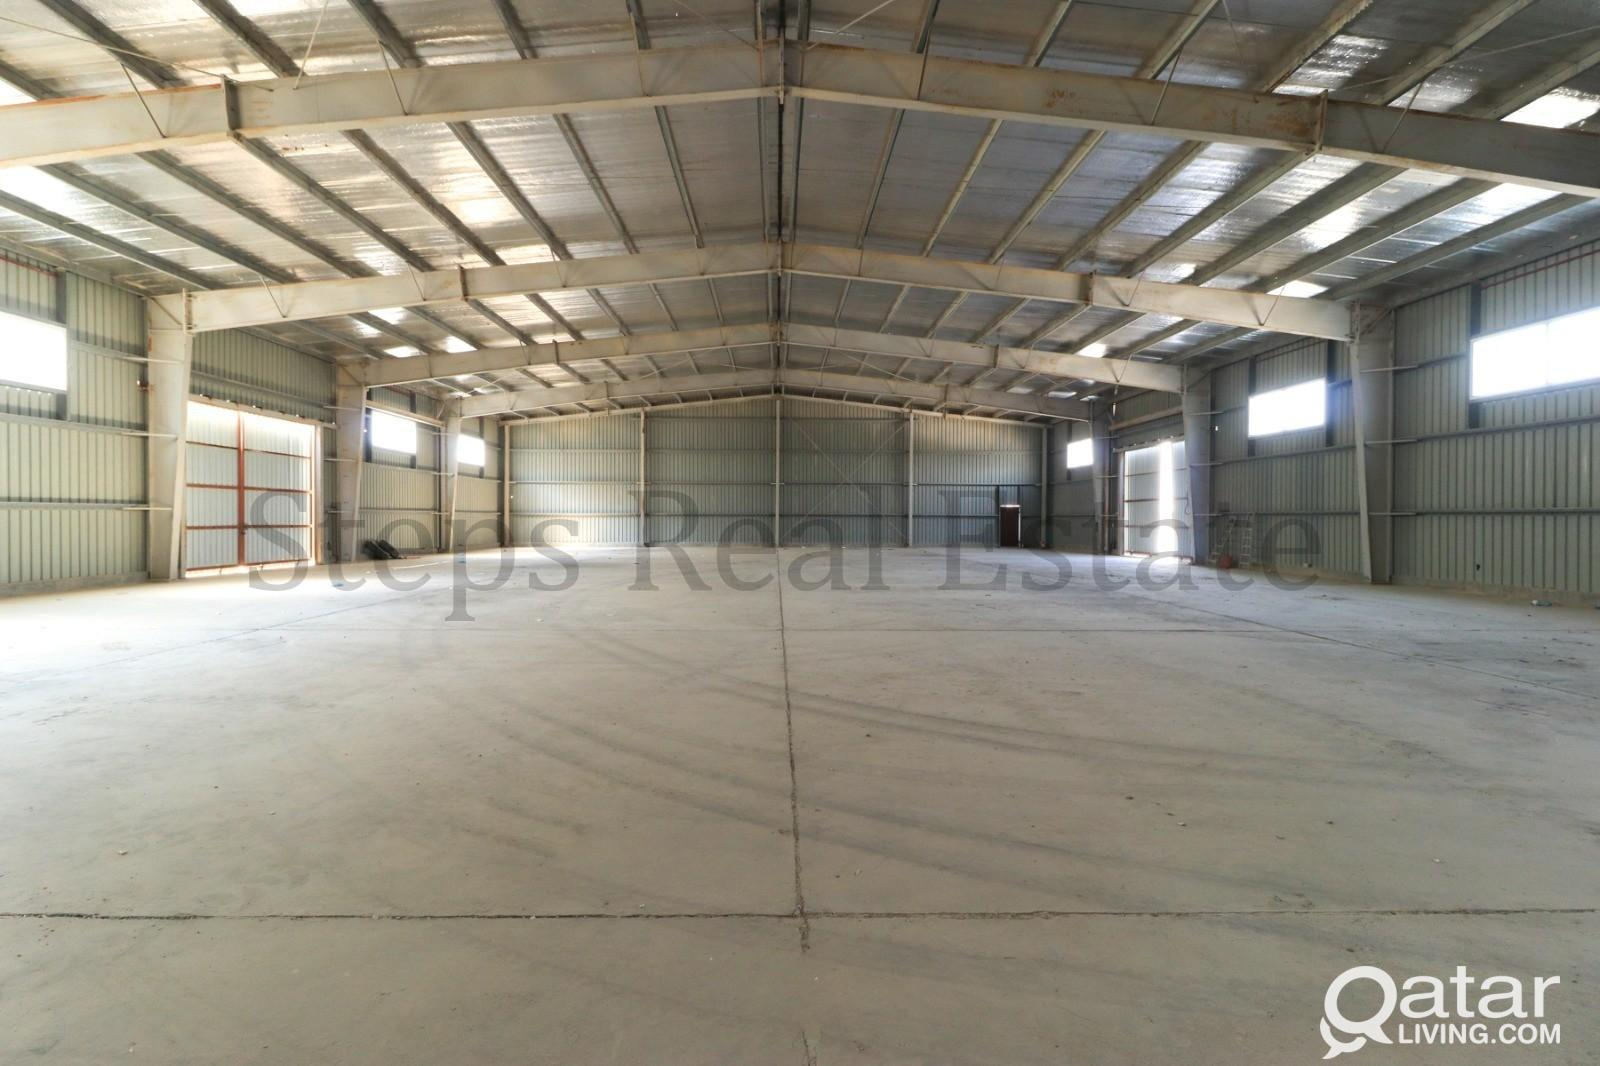 2000 Sqm Land + 1300 Sqm Warehouse for Rent